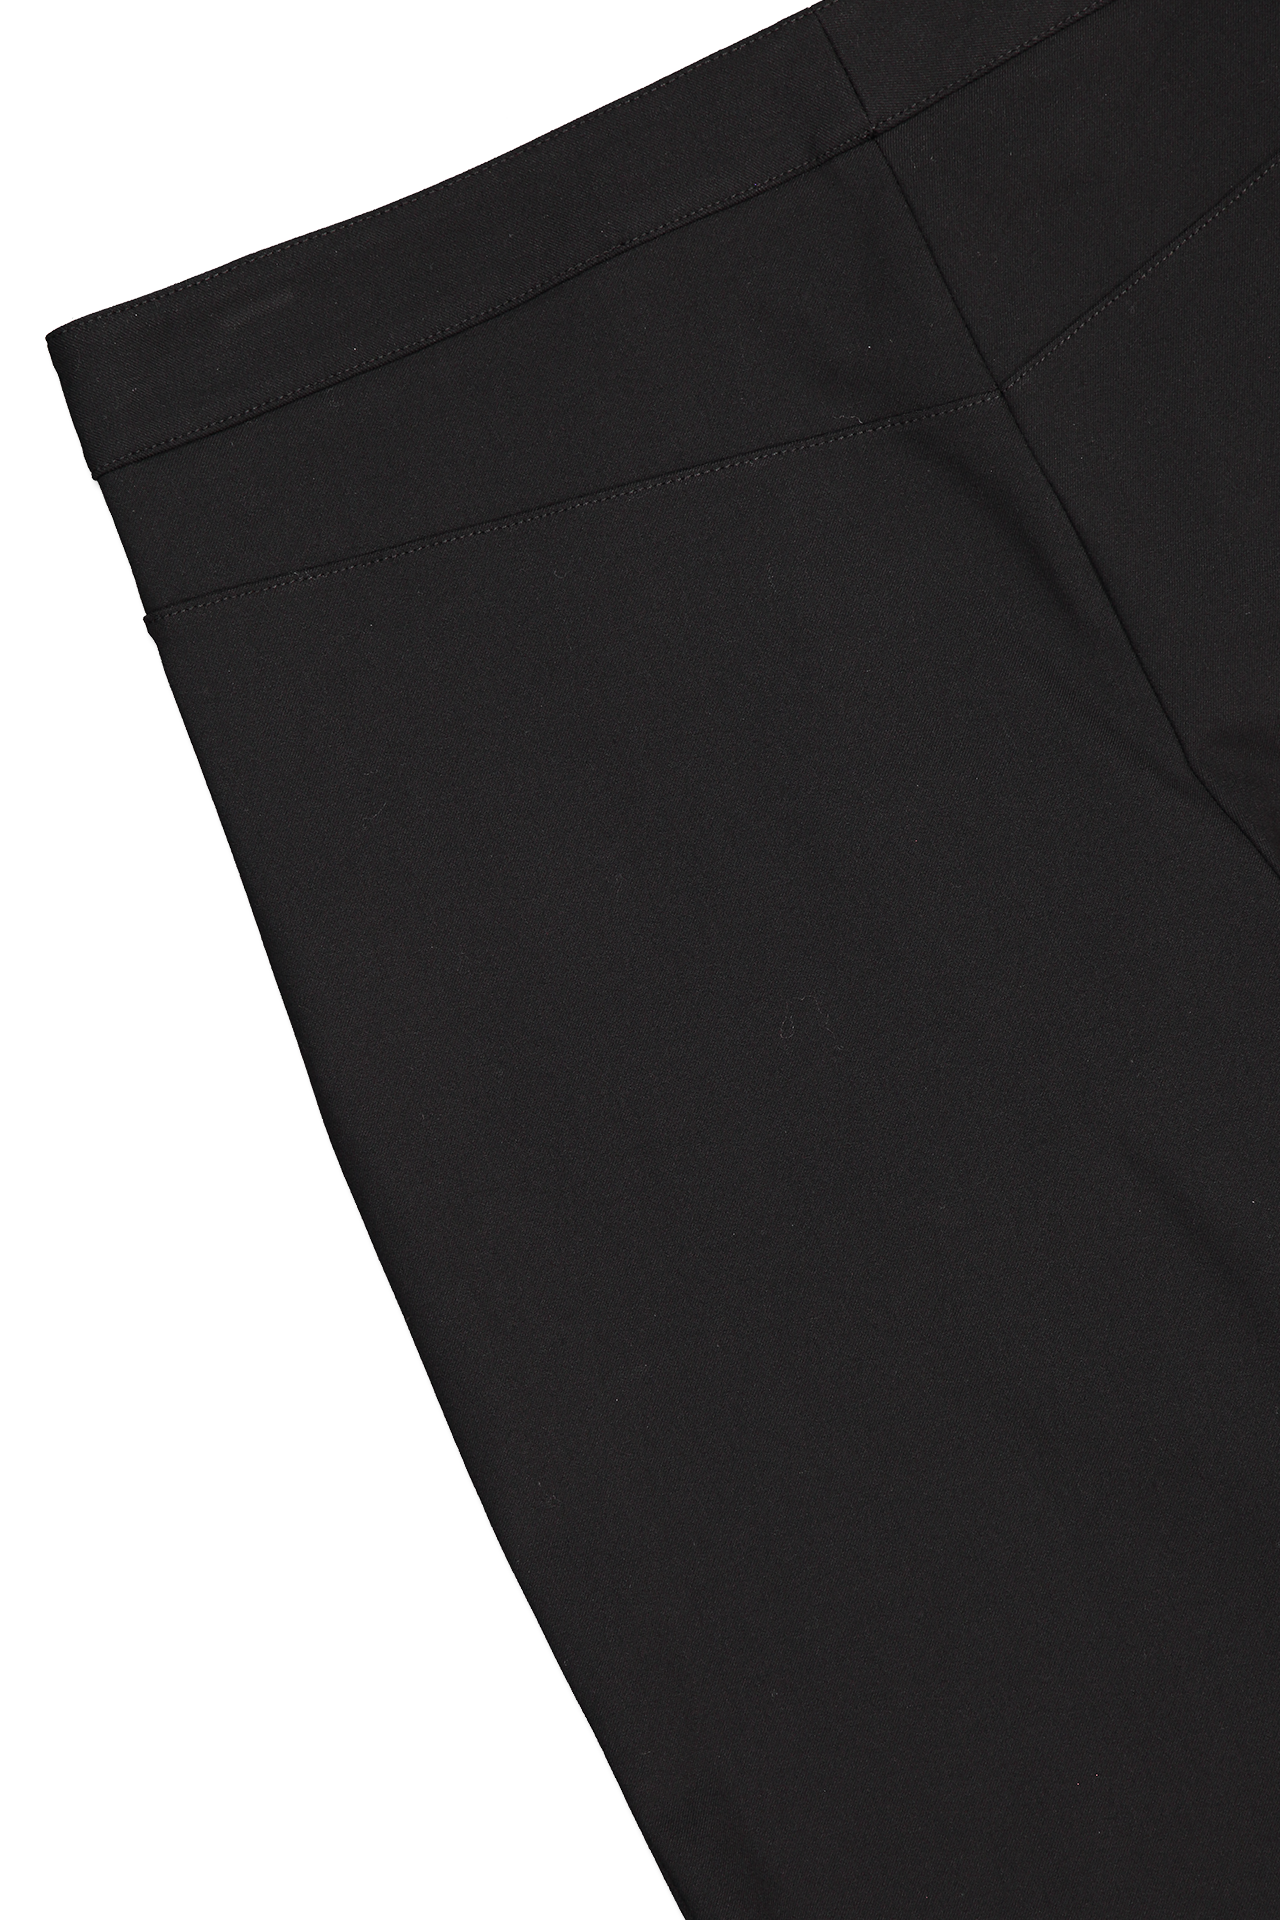 Back Detail Image of Theory Women's Eco Crop Pant Black